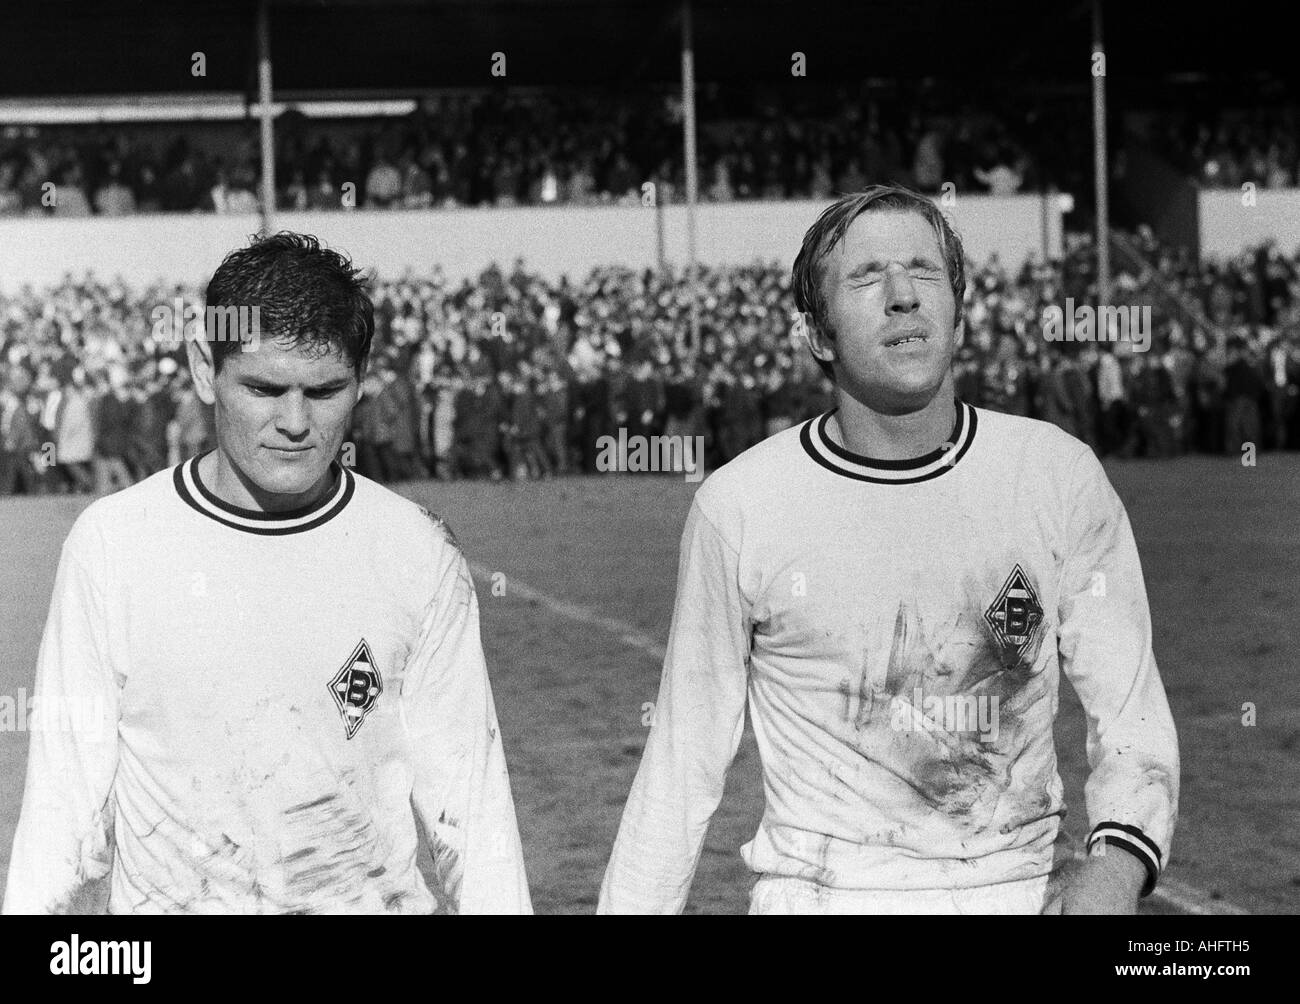 football, Bundesliga, 1968/1969, Borussia Dortmund versus Borussia Moenchengladbach 1:3, Rote Erde Stadium, football players leaving the pitch, left Heinz Wittmann, right Guenter Netzer (both Gladbach) - Stock Image